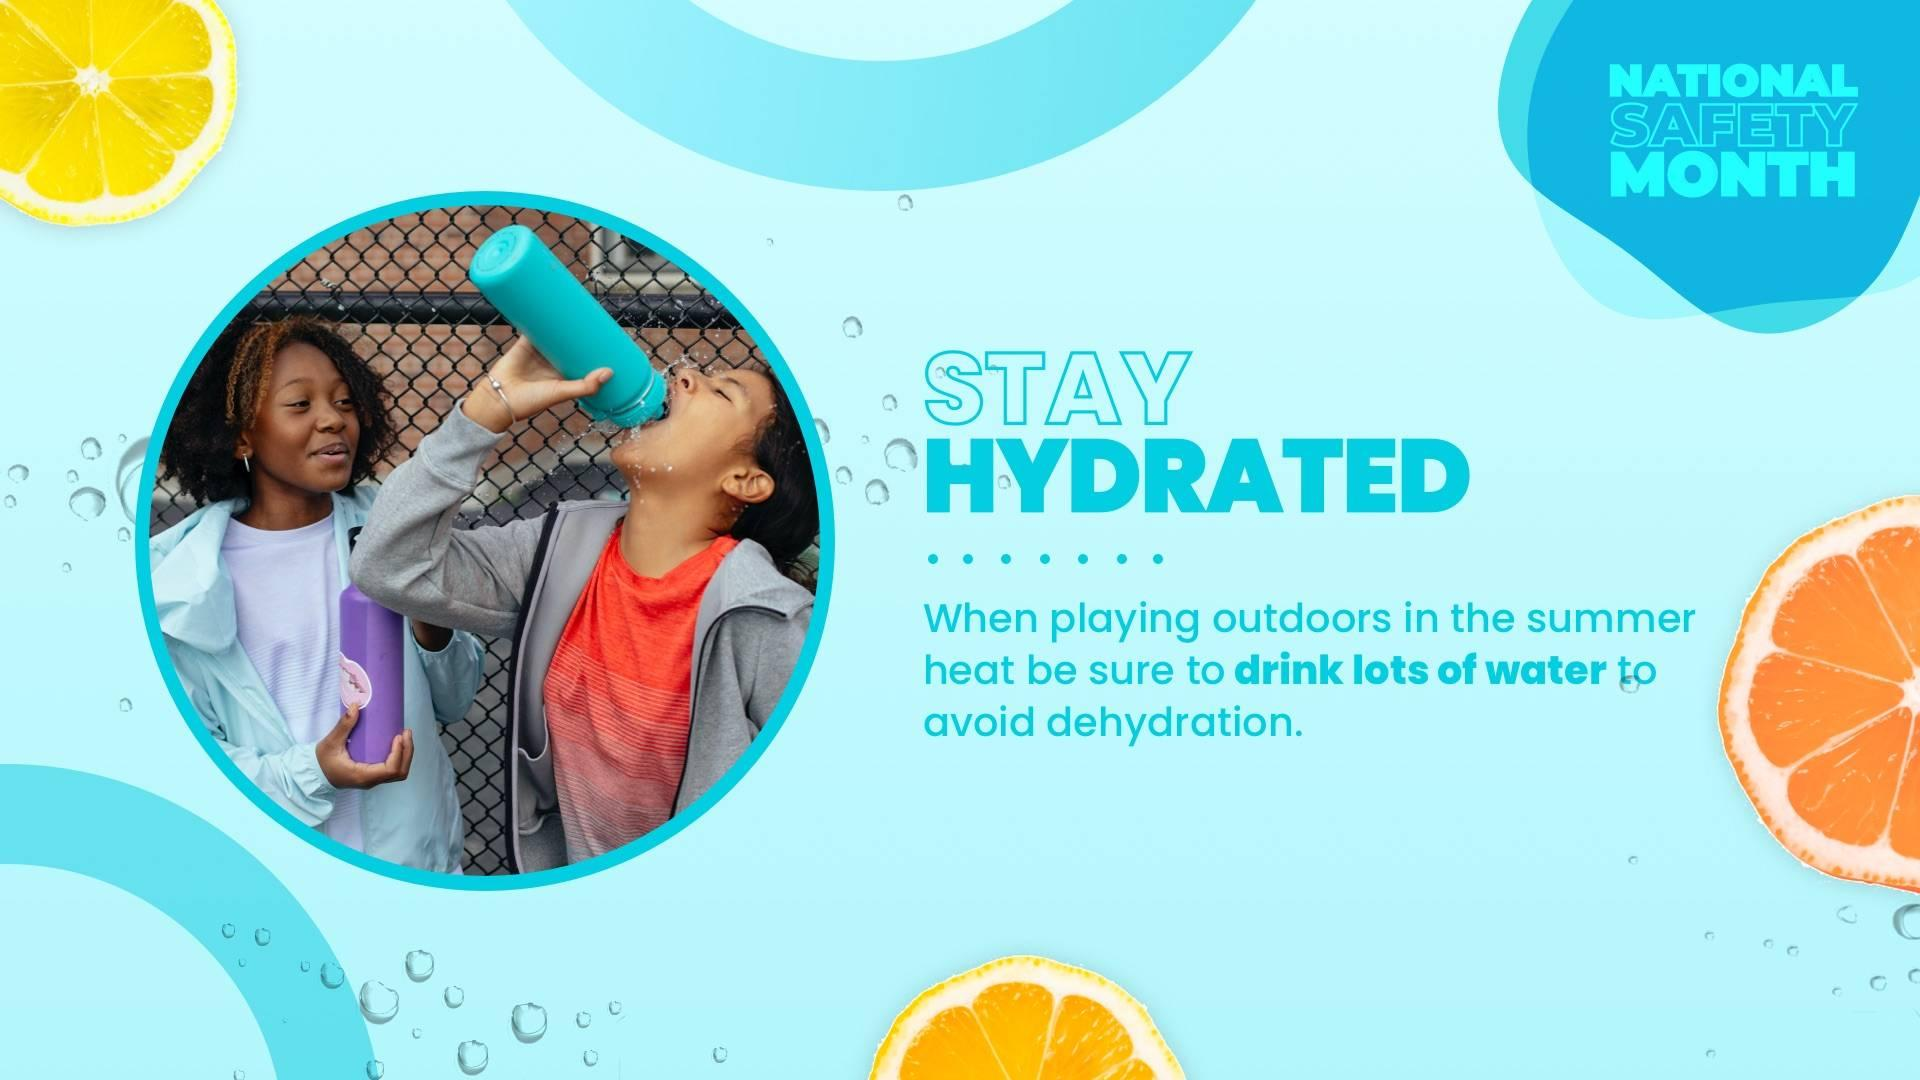 Stay Hydrated - National Safety Month Digital Signage Template